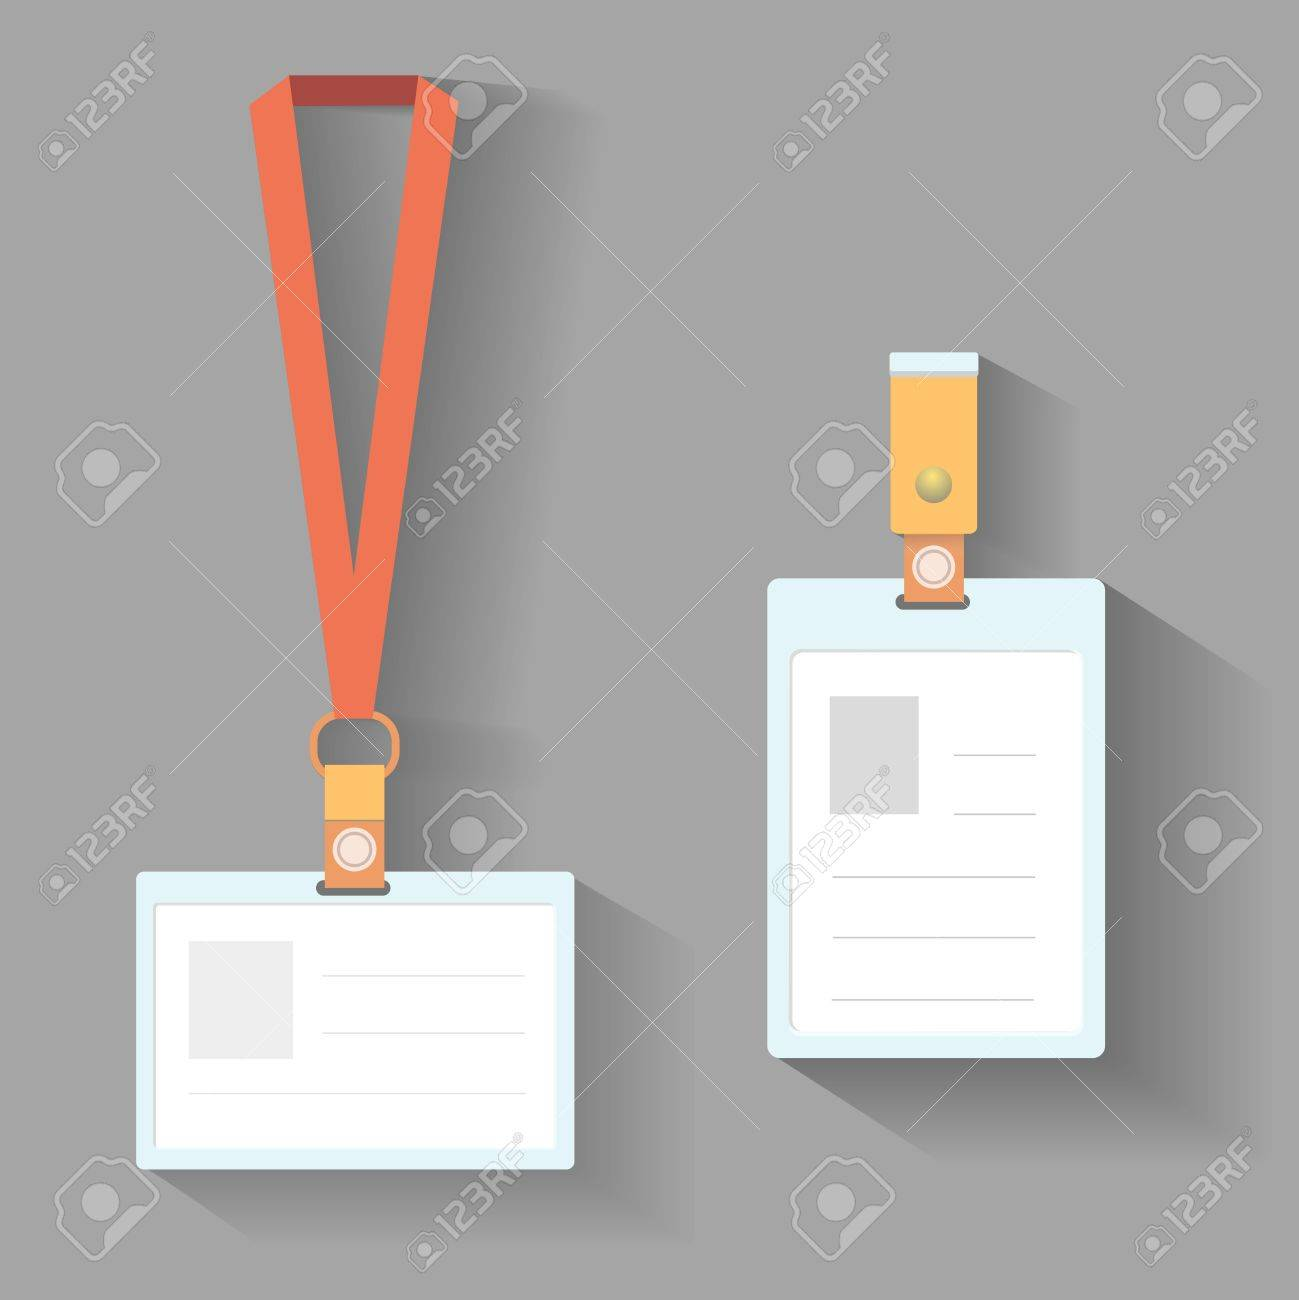 Lanyard Badges Template Flat Design With Shadow Stock Photo, Picture ...